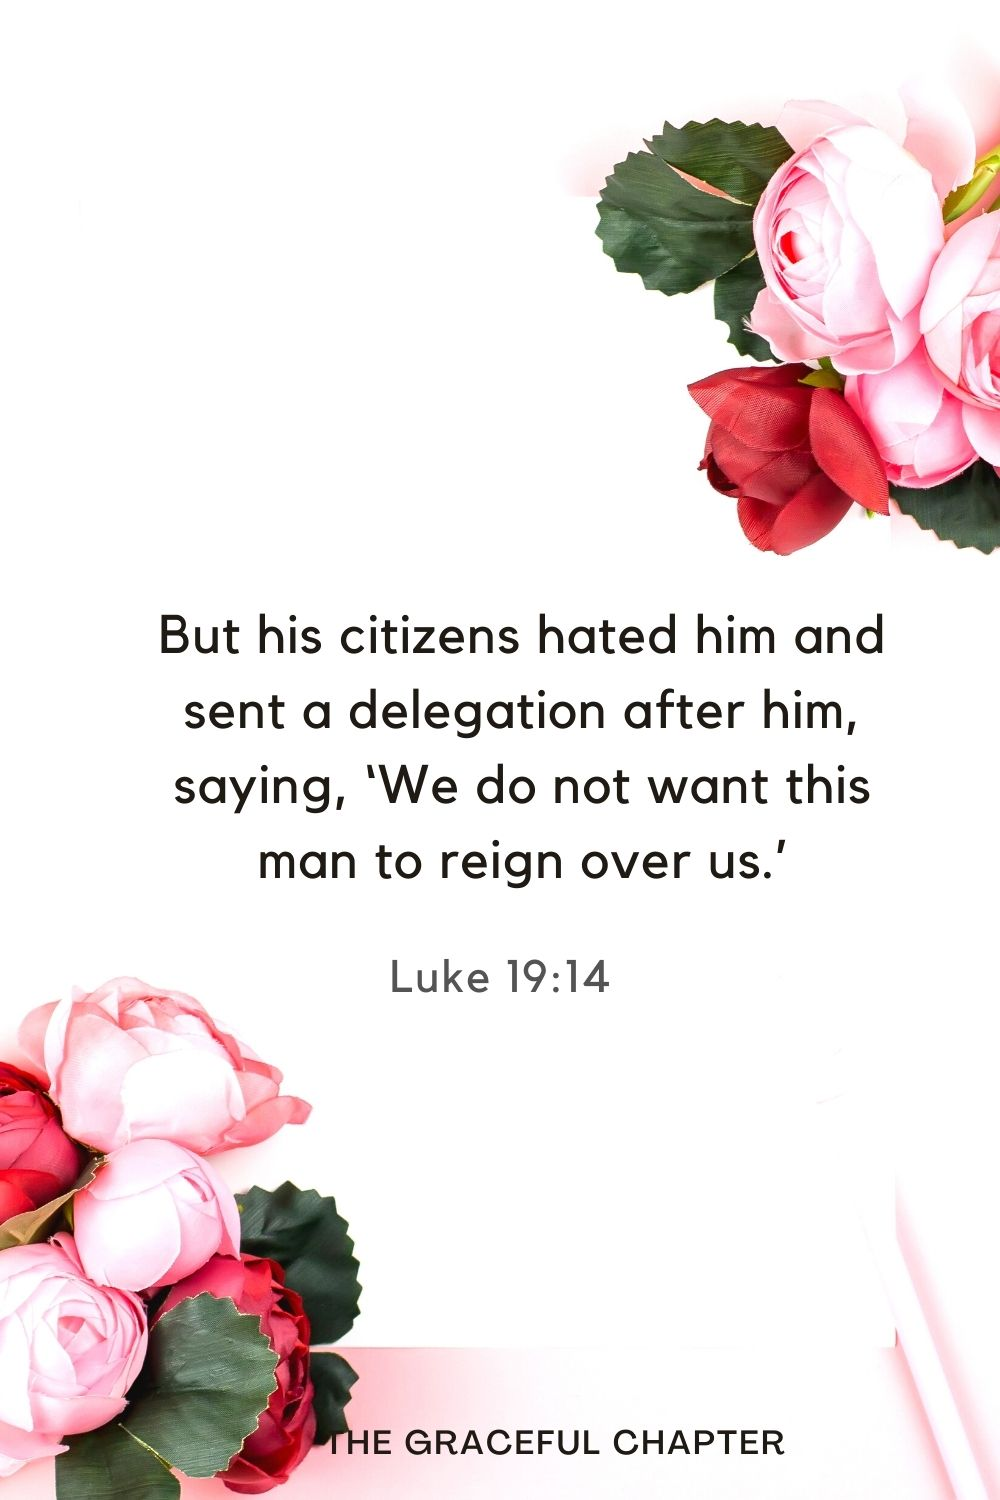 But his citizens hated him and sent a delegation after him, saying, 'We do not want this man to reign over us.' Luke 19:14